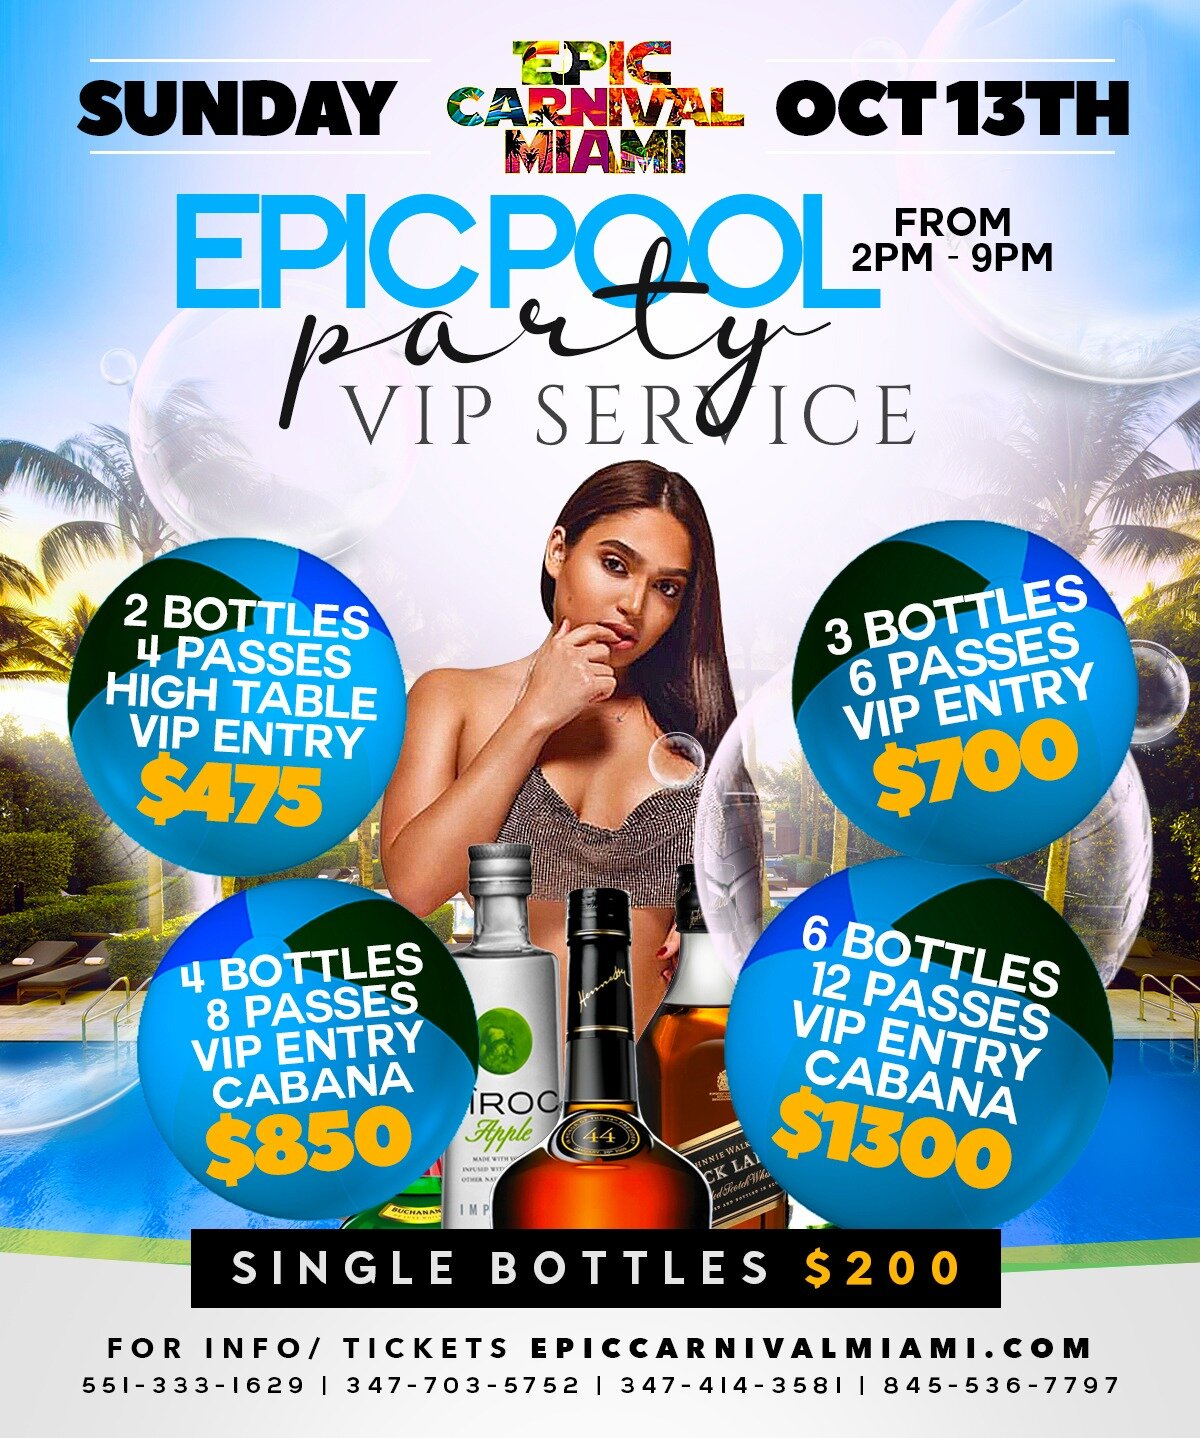 Epic Pool Party Miami 2019 - VIP Service - October 13.jpeg